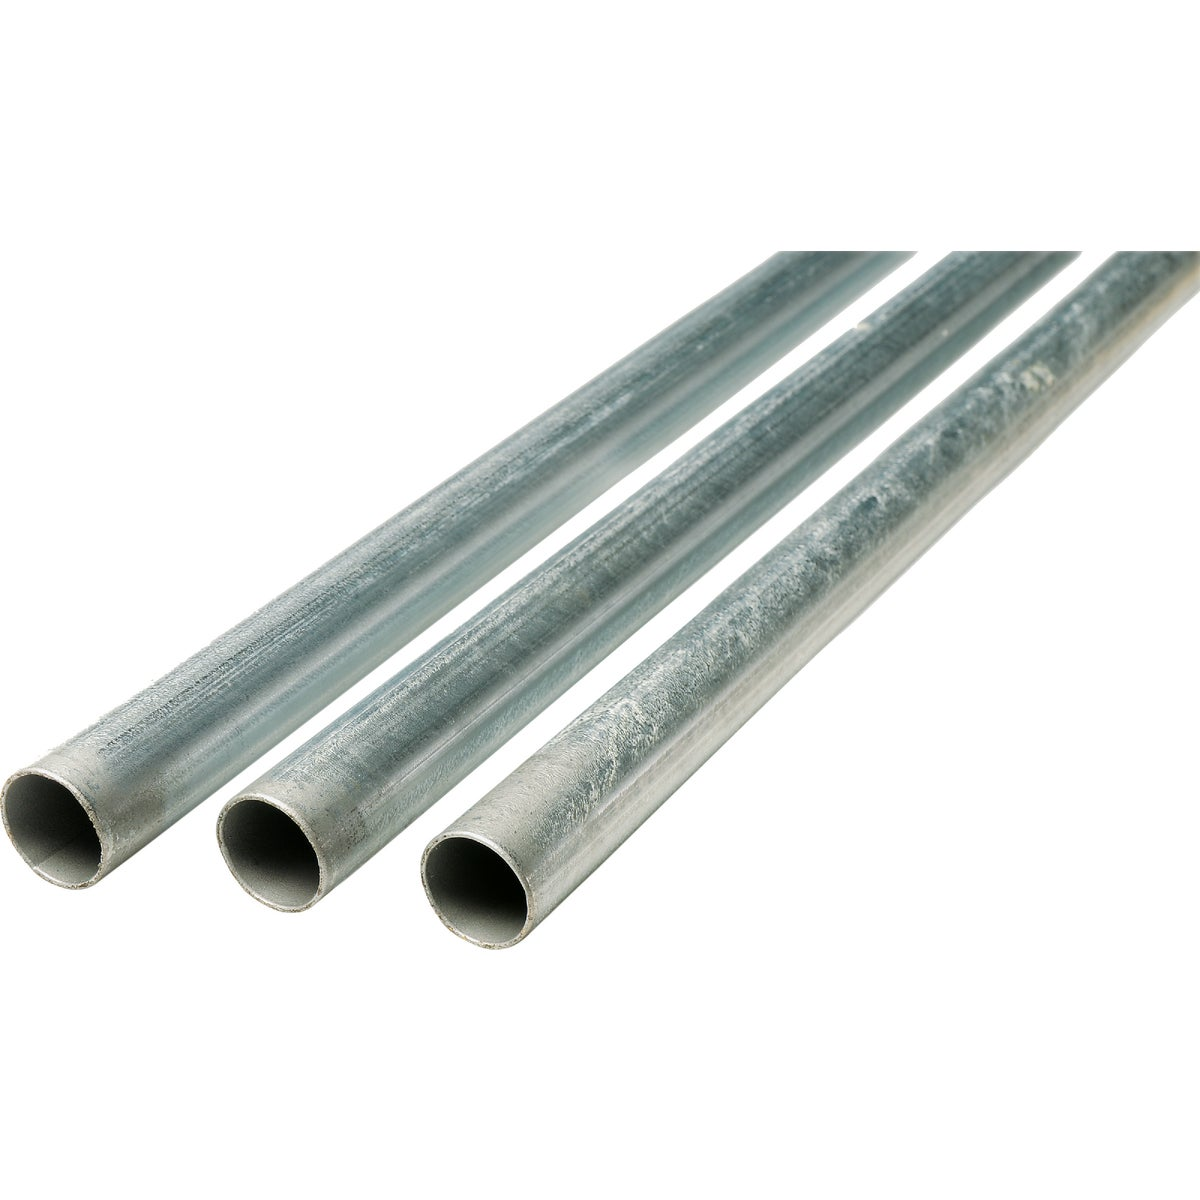 "3/4"" EMT CONDUIT - 101550 by Allied Tube  Atkore"